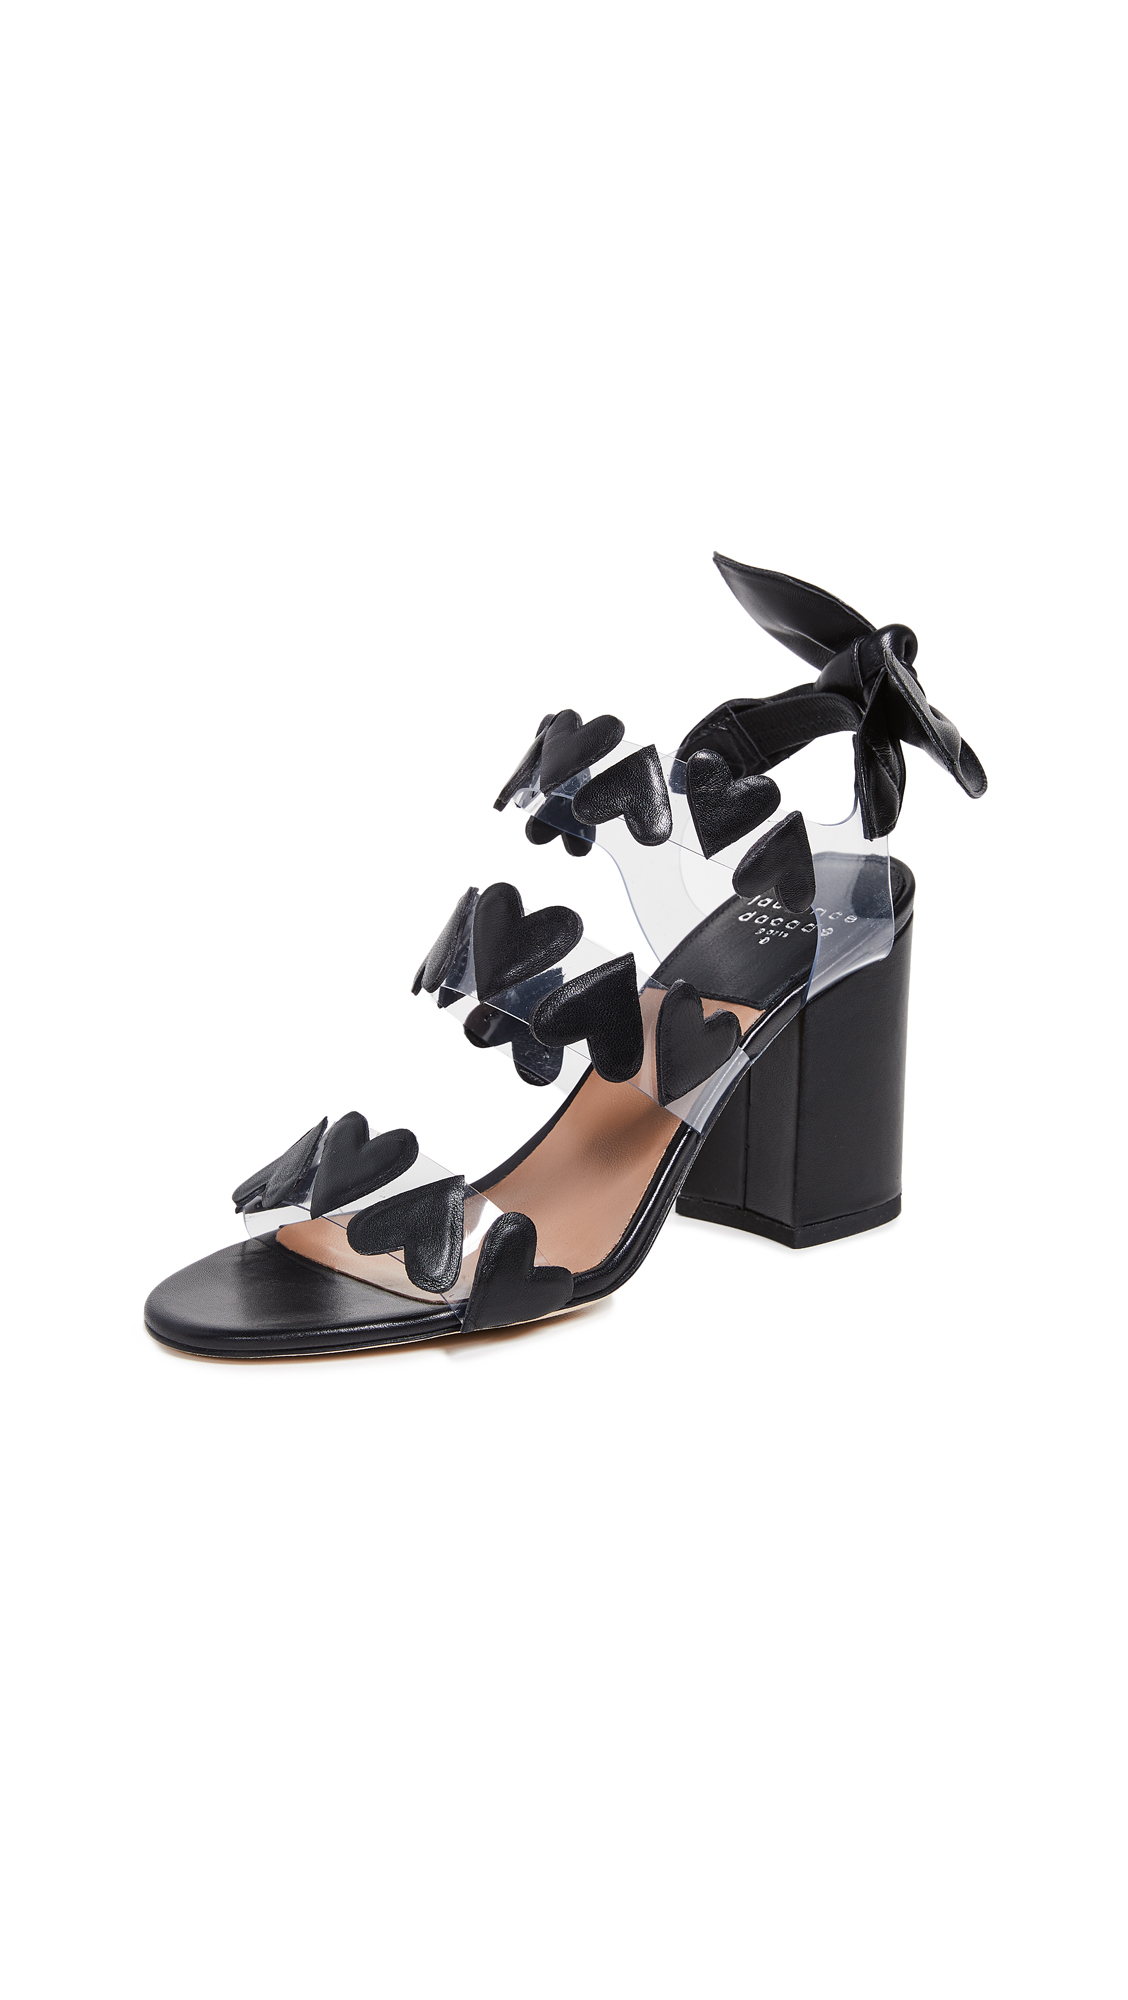 Laurence Dacade Tamara Sandals - Black